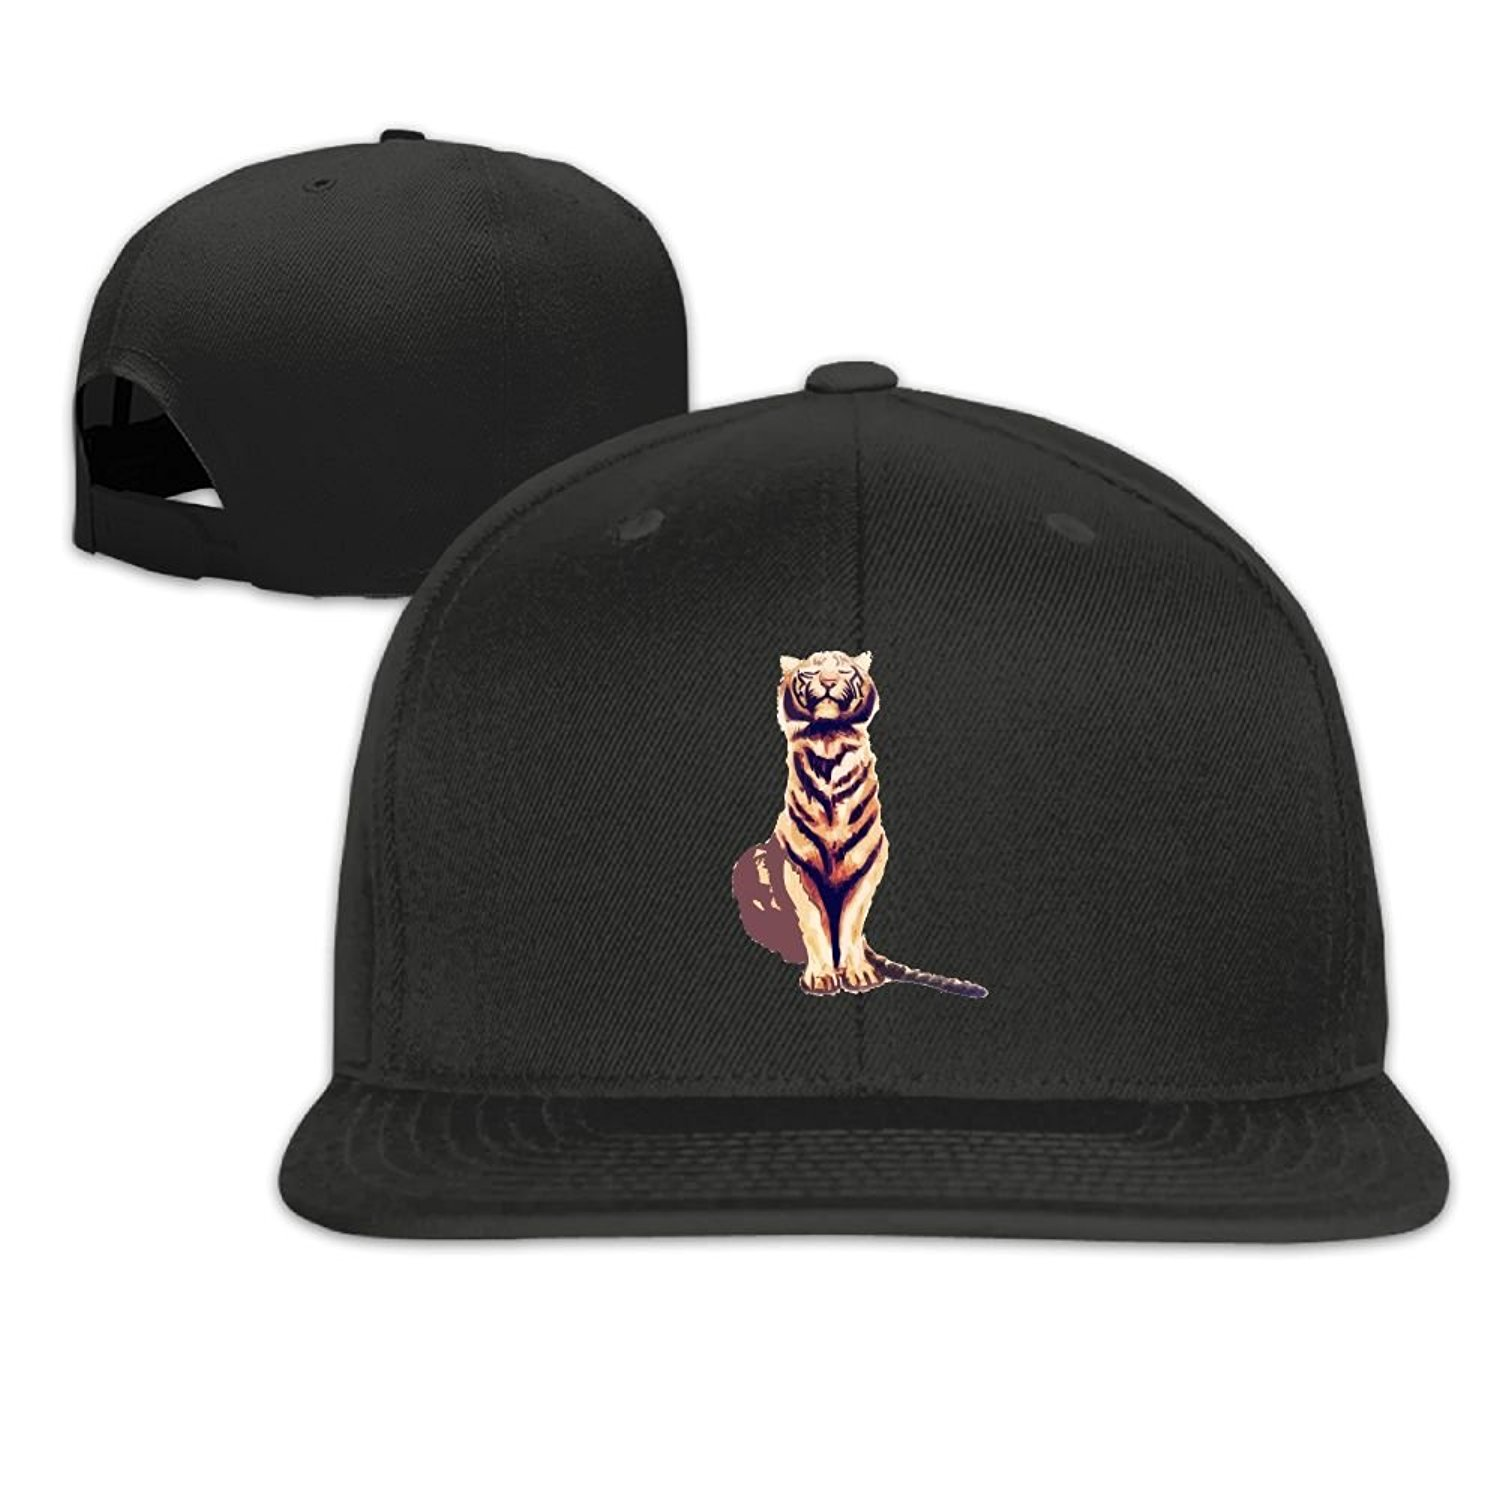 79331145868f Get Quotations · Tiger With Cheetah Print Men s Leisure Flat Cap Snapback  Graphic Flat Brim Baseball Hats